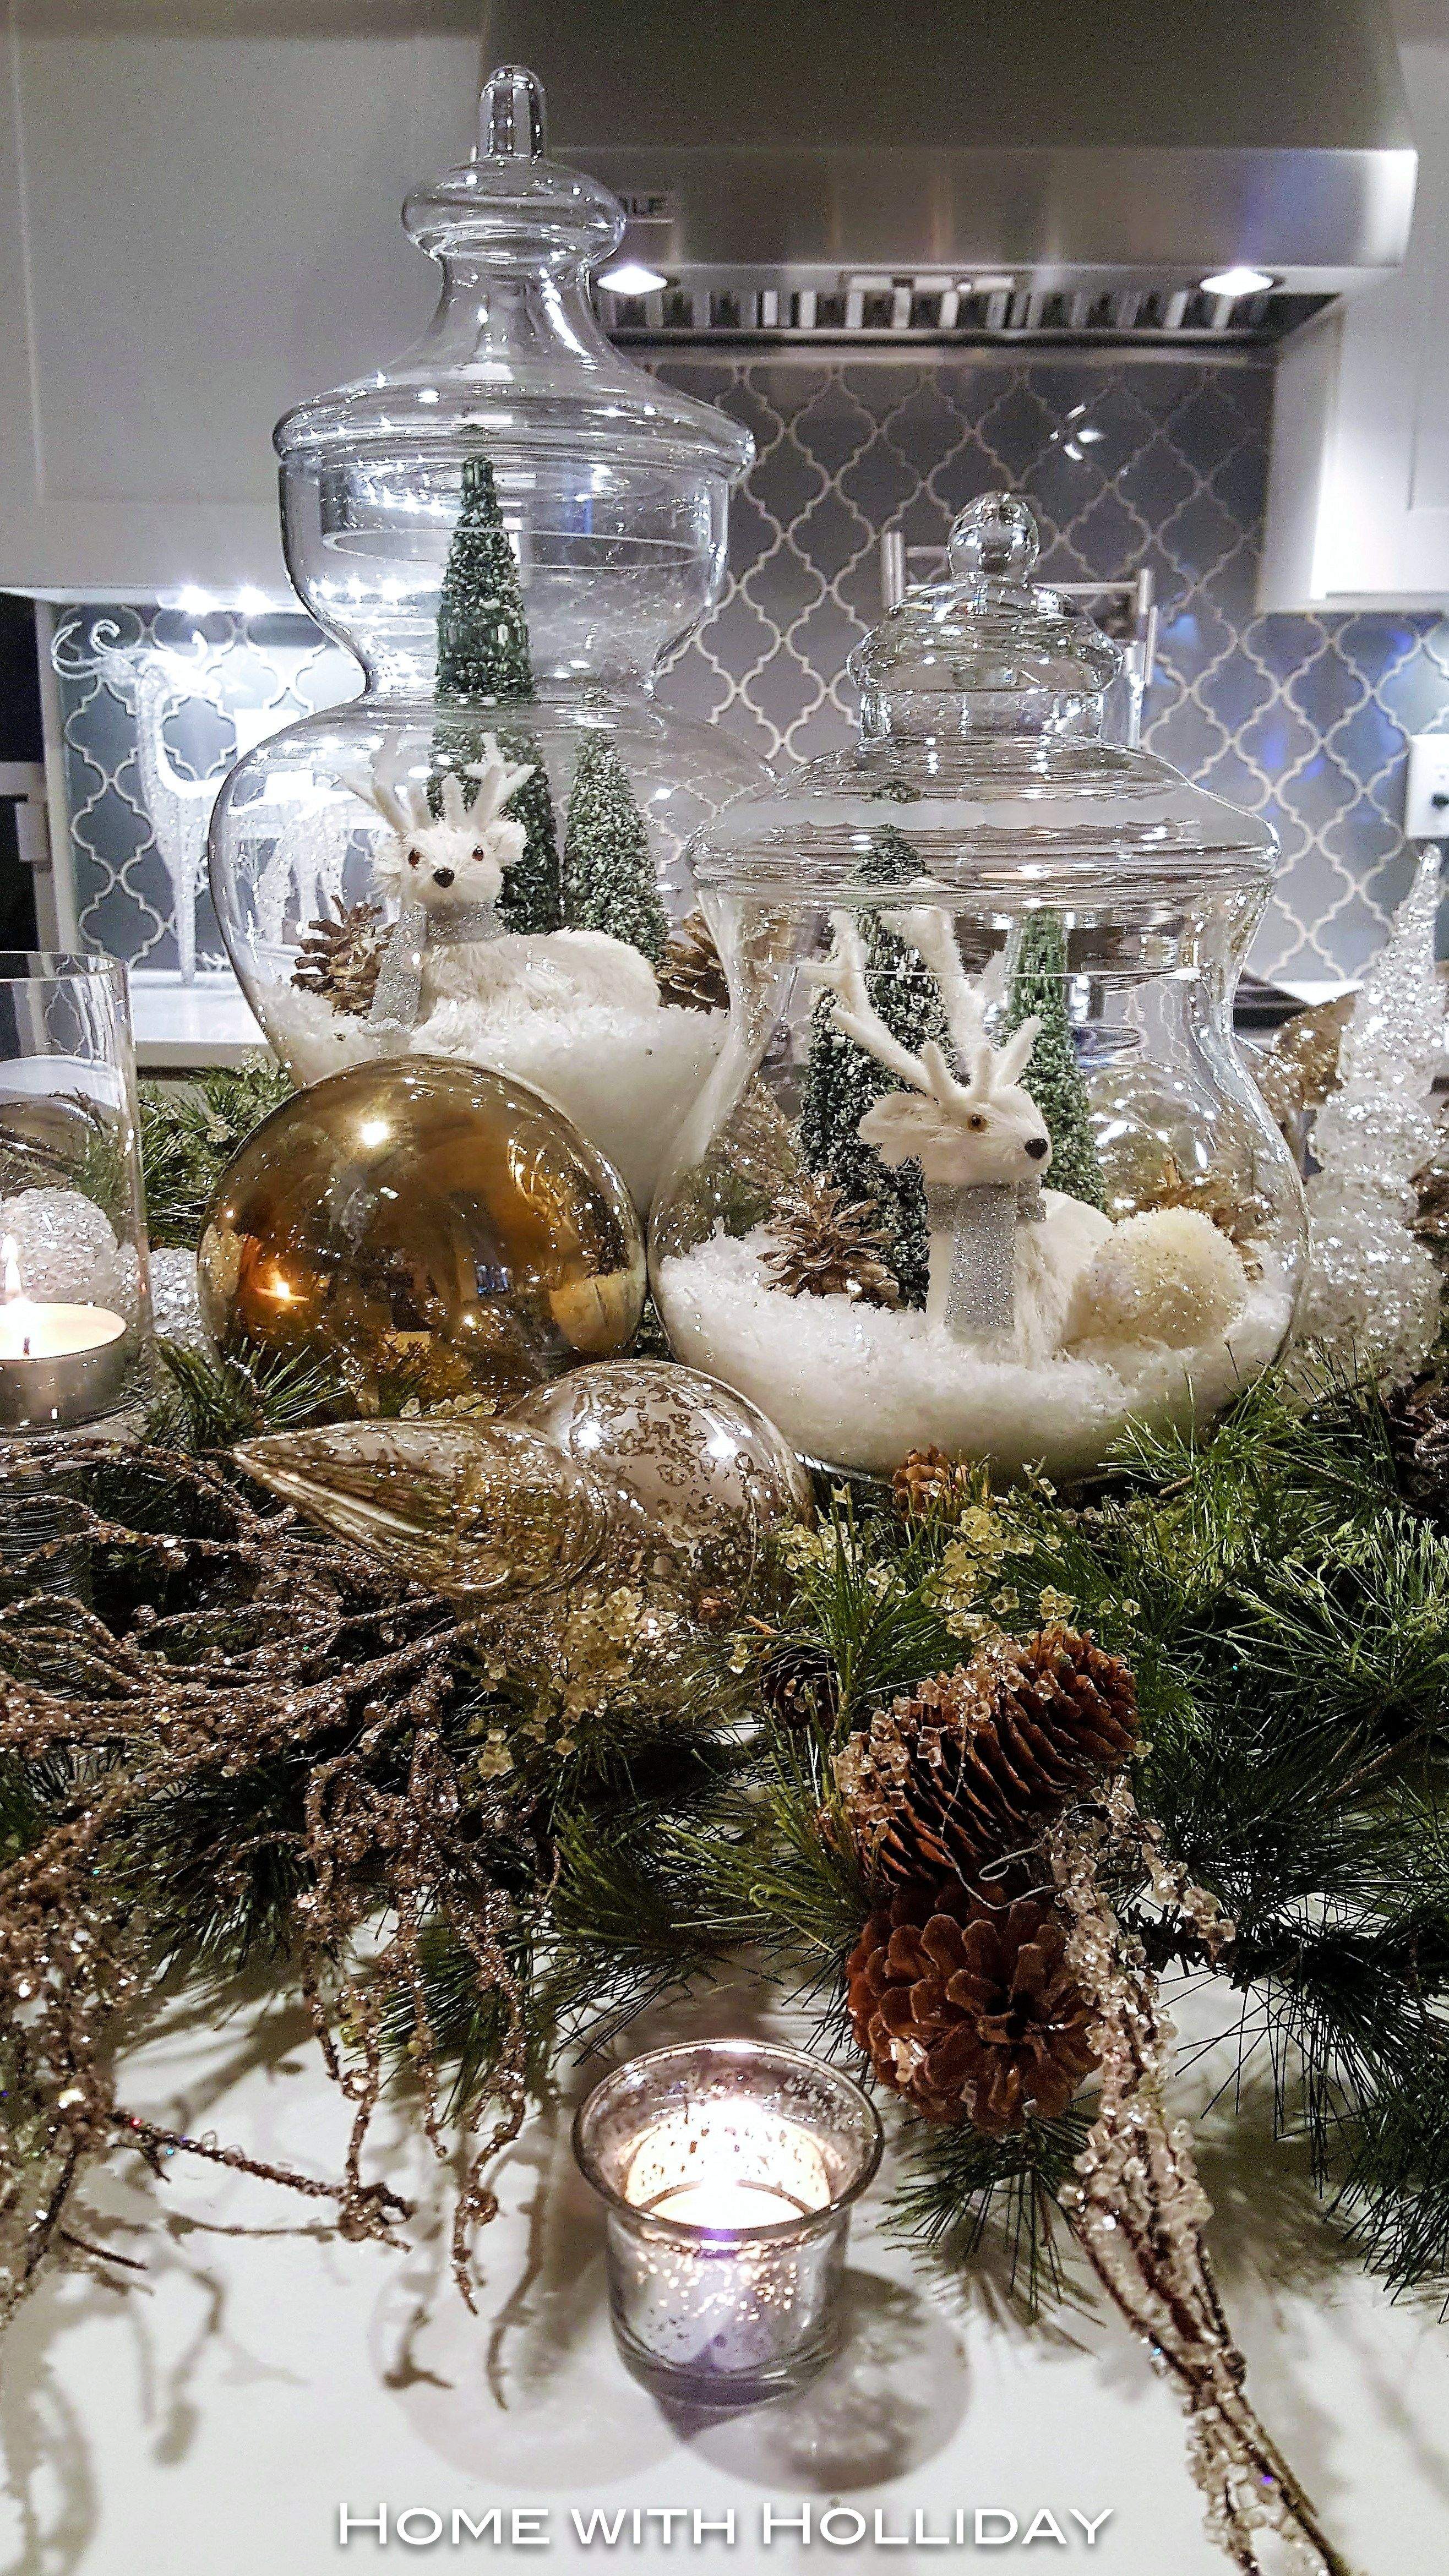 Easy And Elegant Christmas Decorating Ideas Use Apothecary Jars Home With Holliday Christmasdecor Apothecaryjars Christmasdecorations